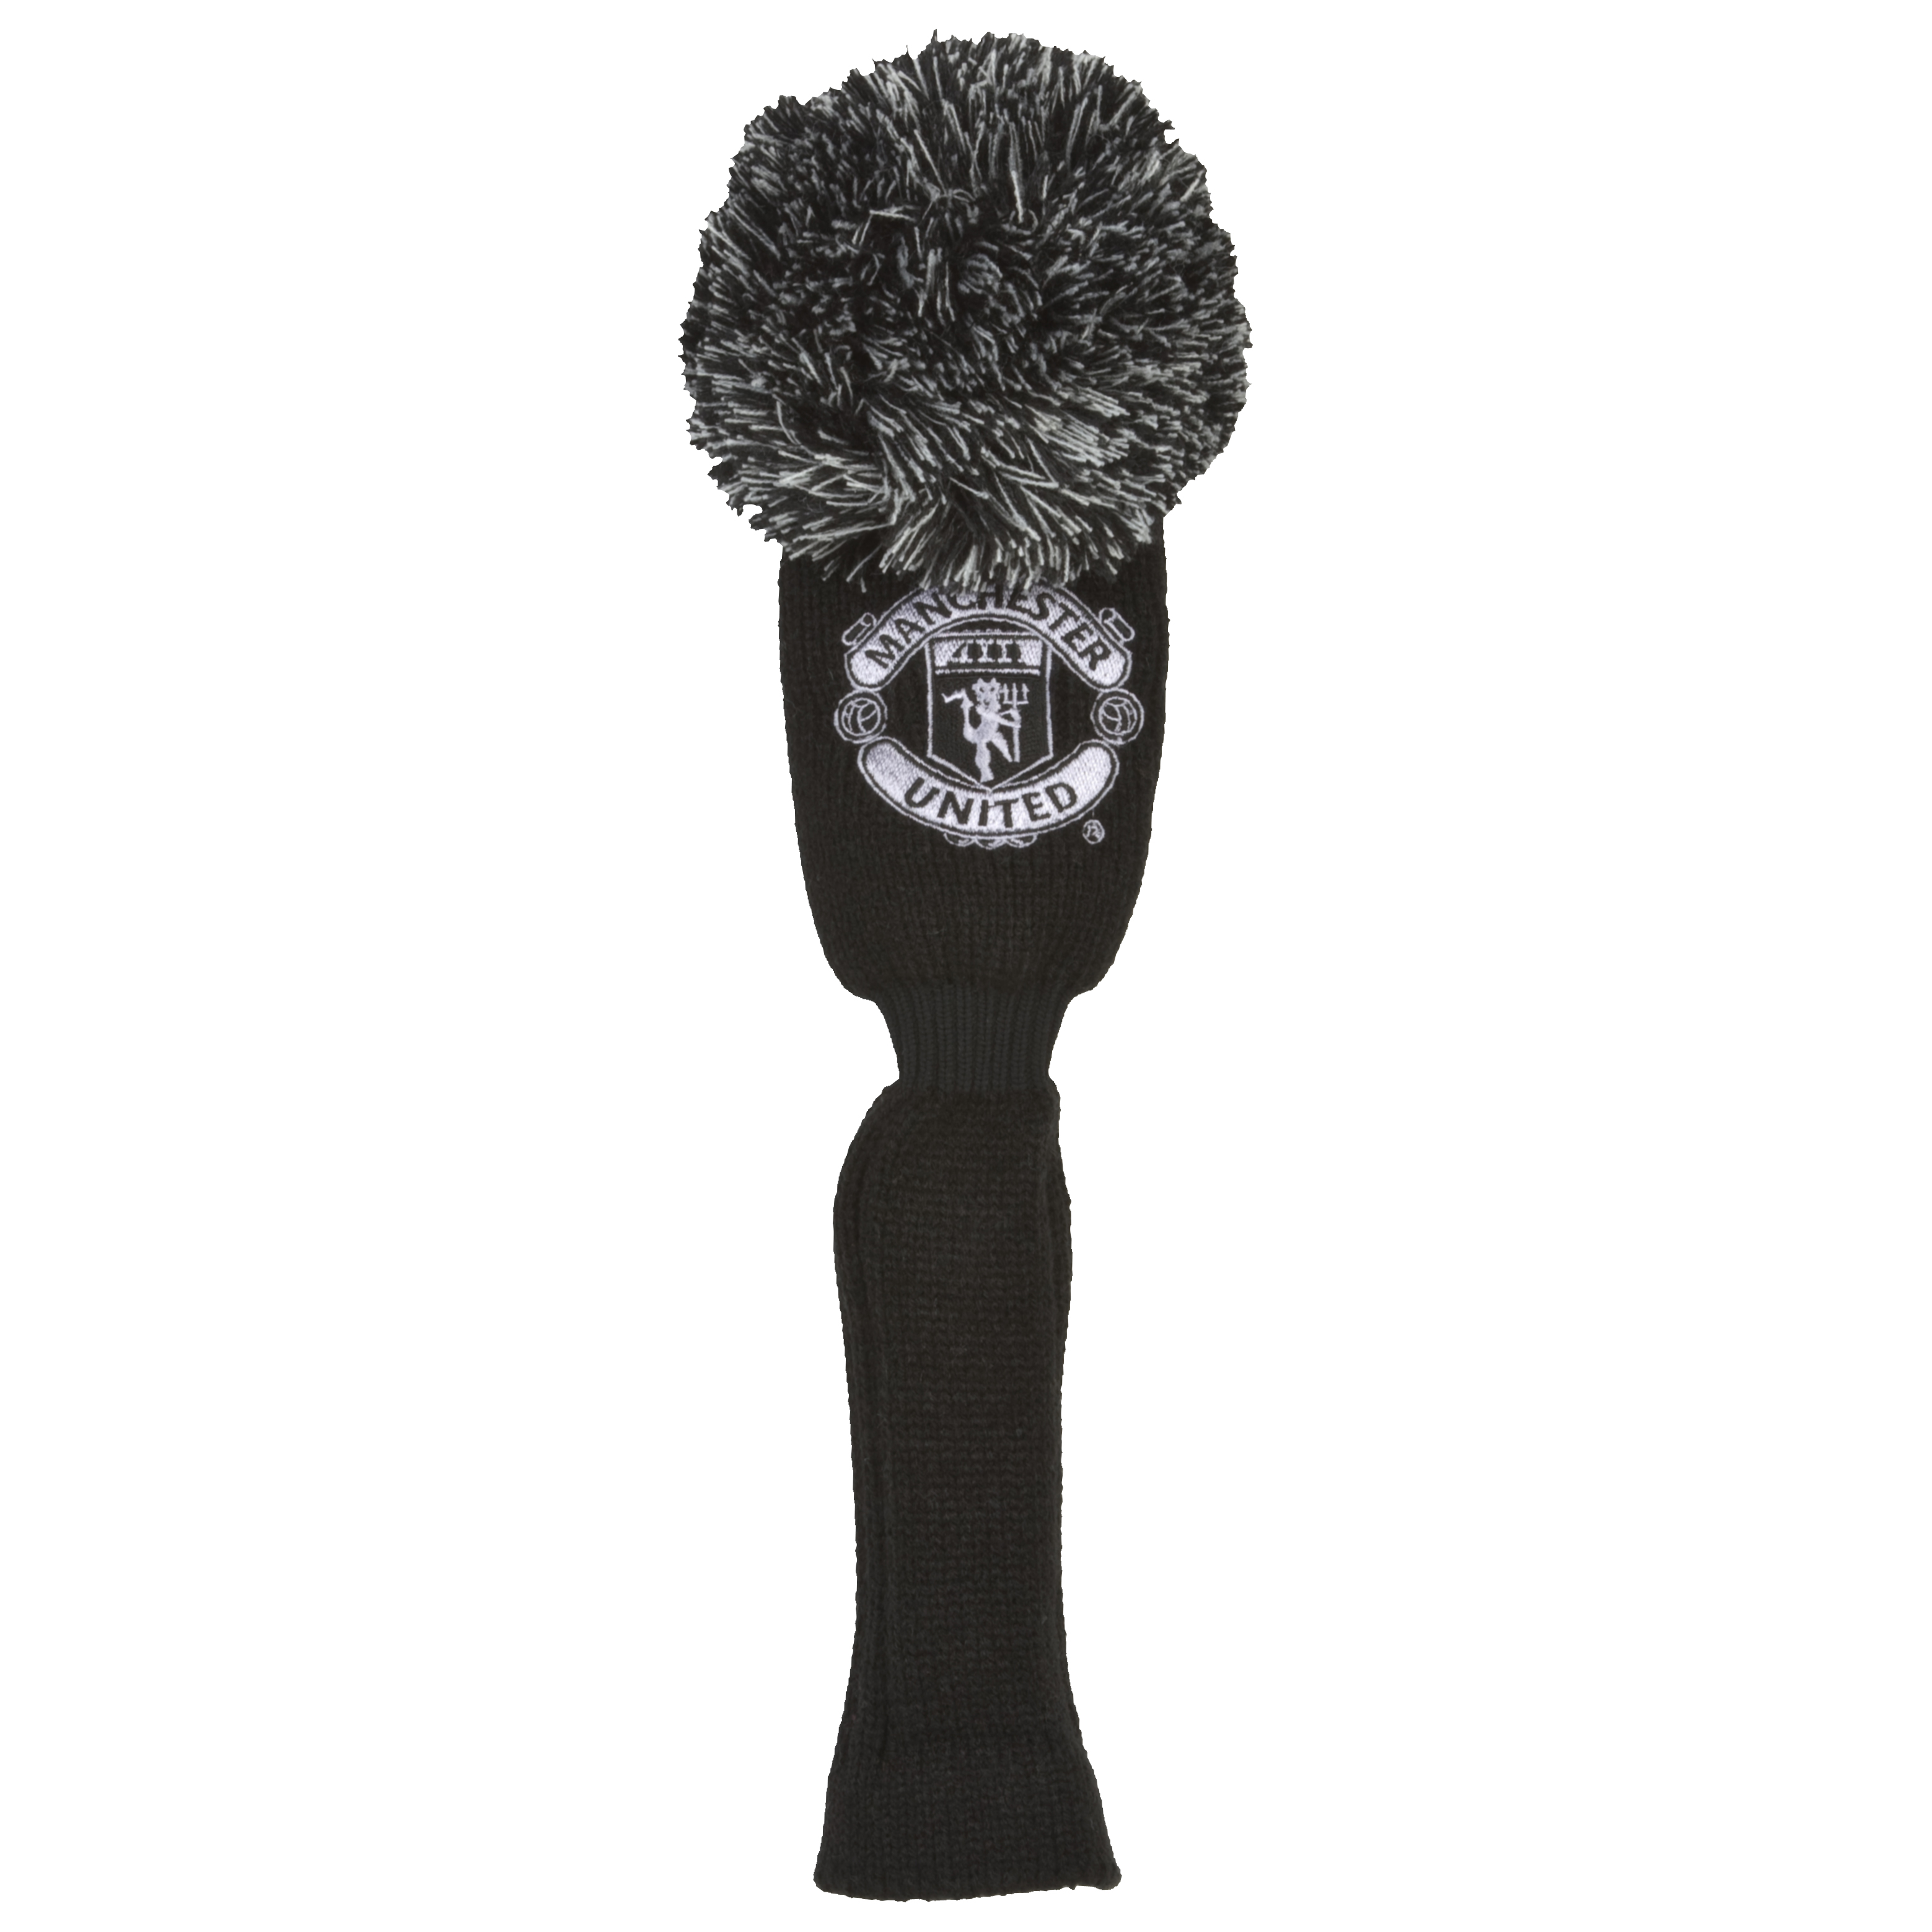 Manchester United Pompom Driver Head Cover - Black/Silver